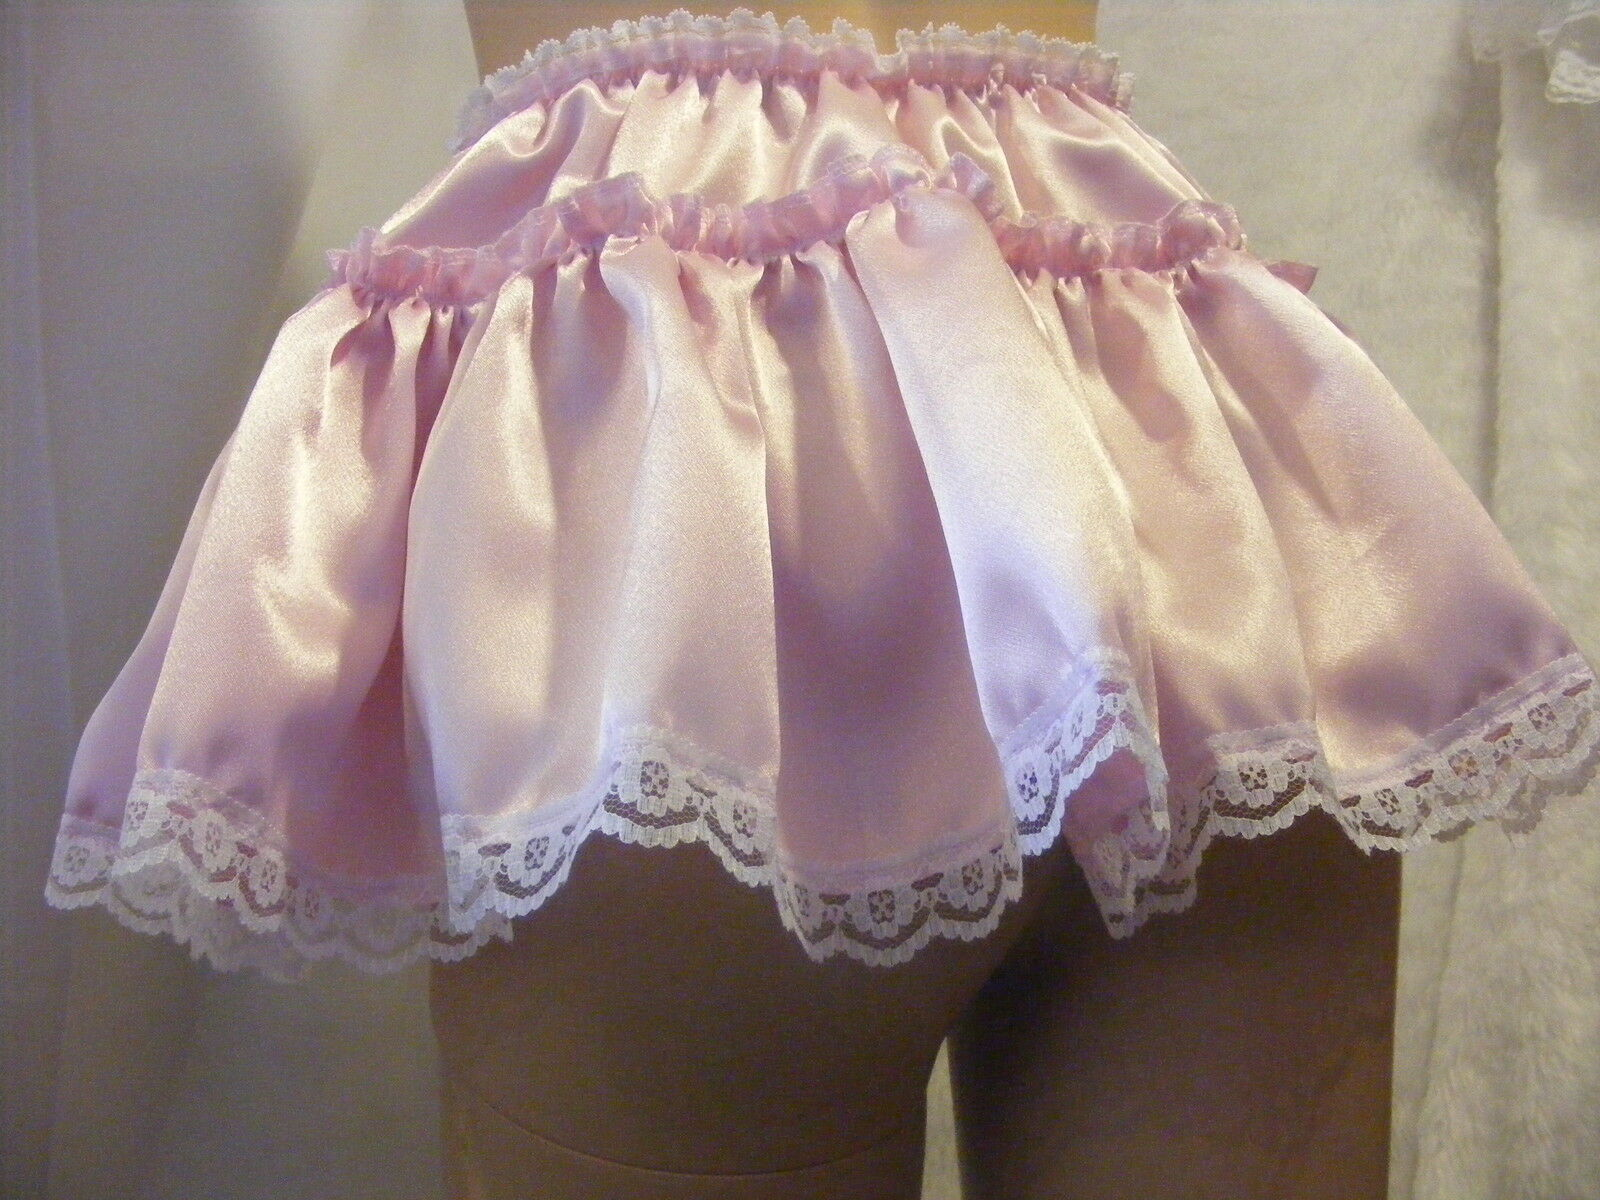 SISSY ADULT BABY SEXY FANCY DRESS PINK SATIN MICRO MINI FRILLY SKIRT 11 LONG